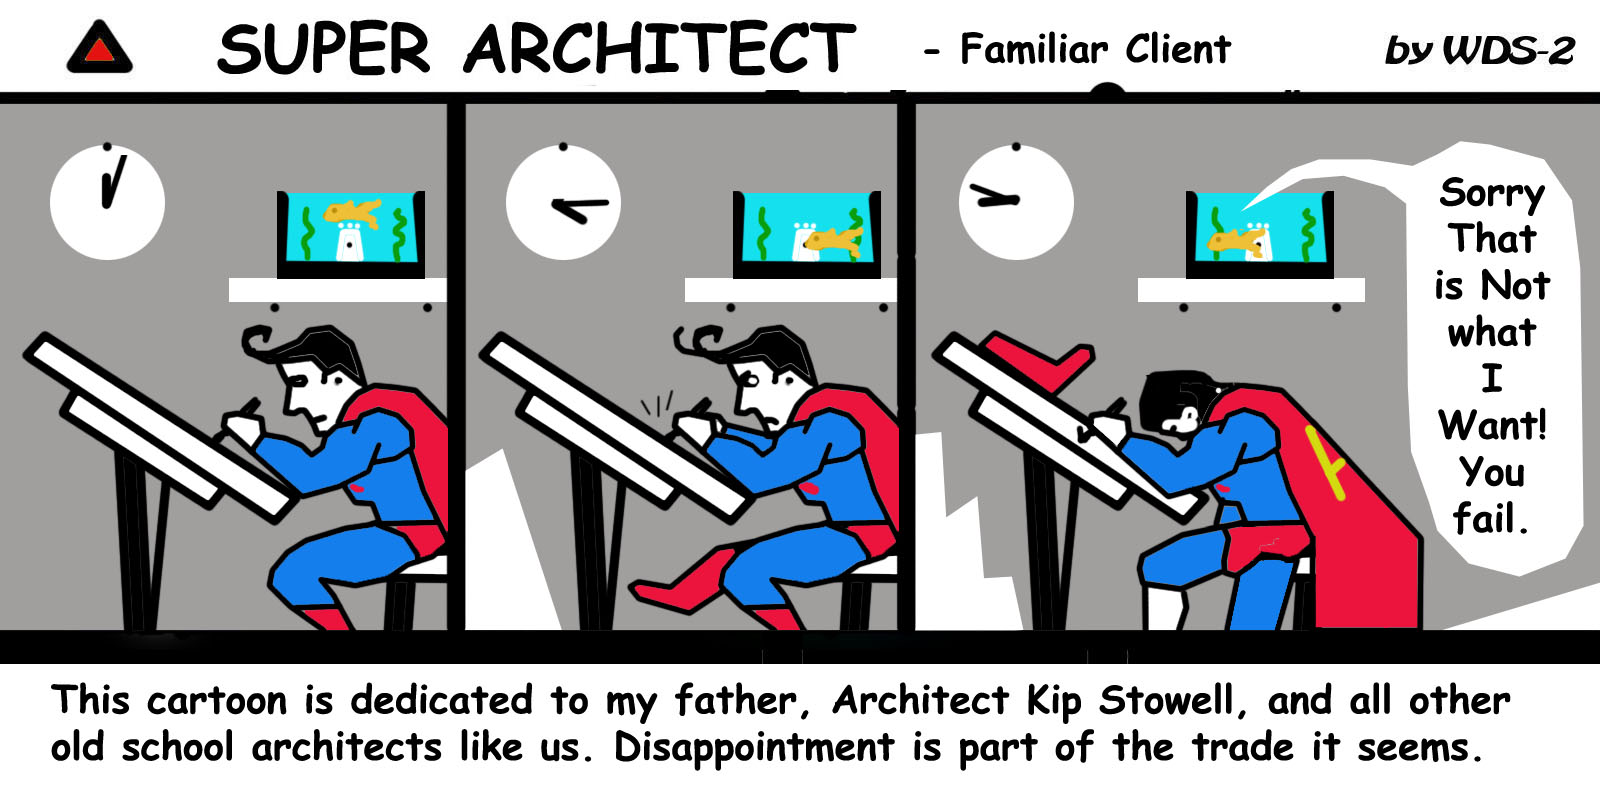 resumes in word sample customer service resume resumes in word tips for formatting resumes using microsoft word 2010 super architect cartoon series